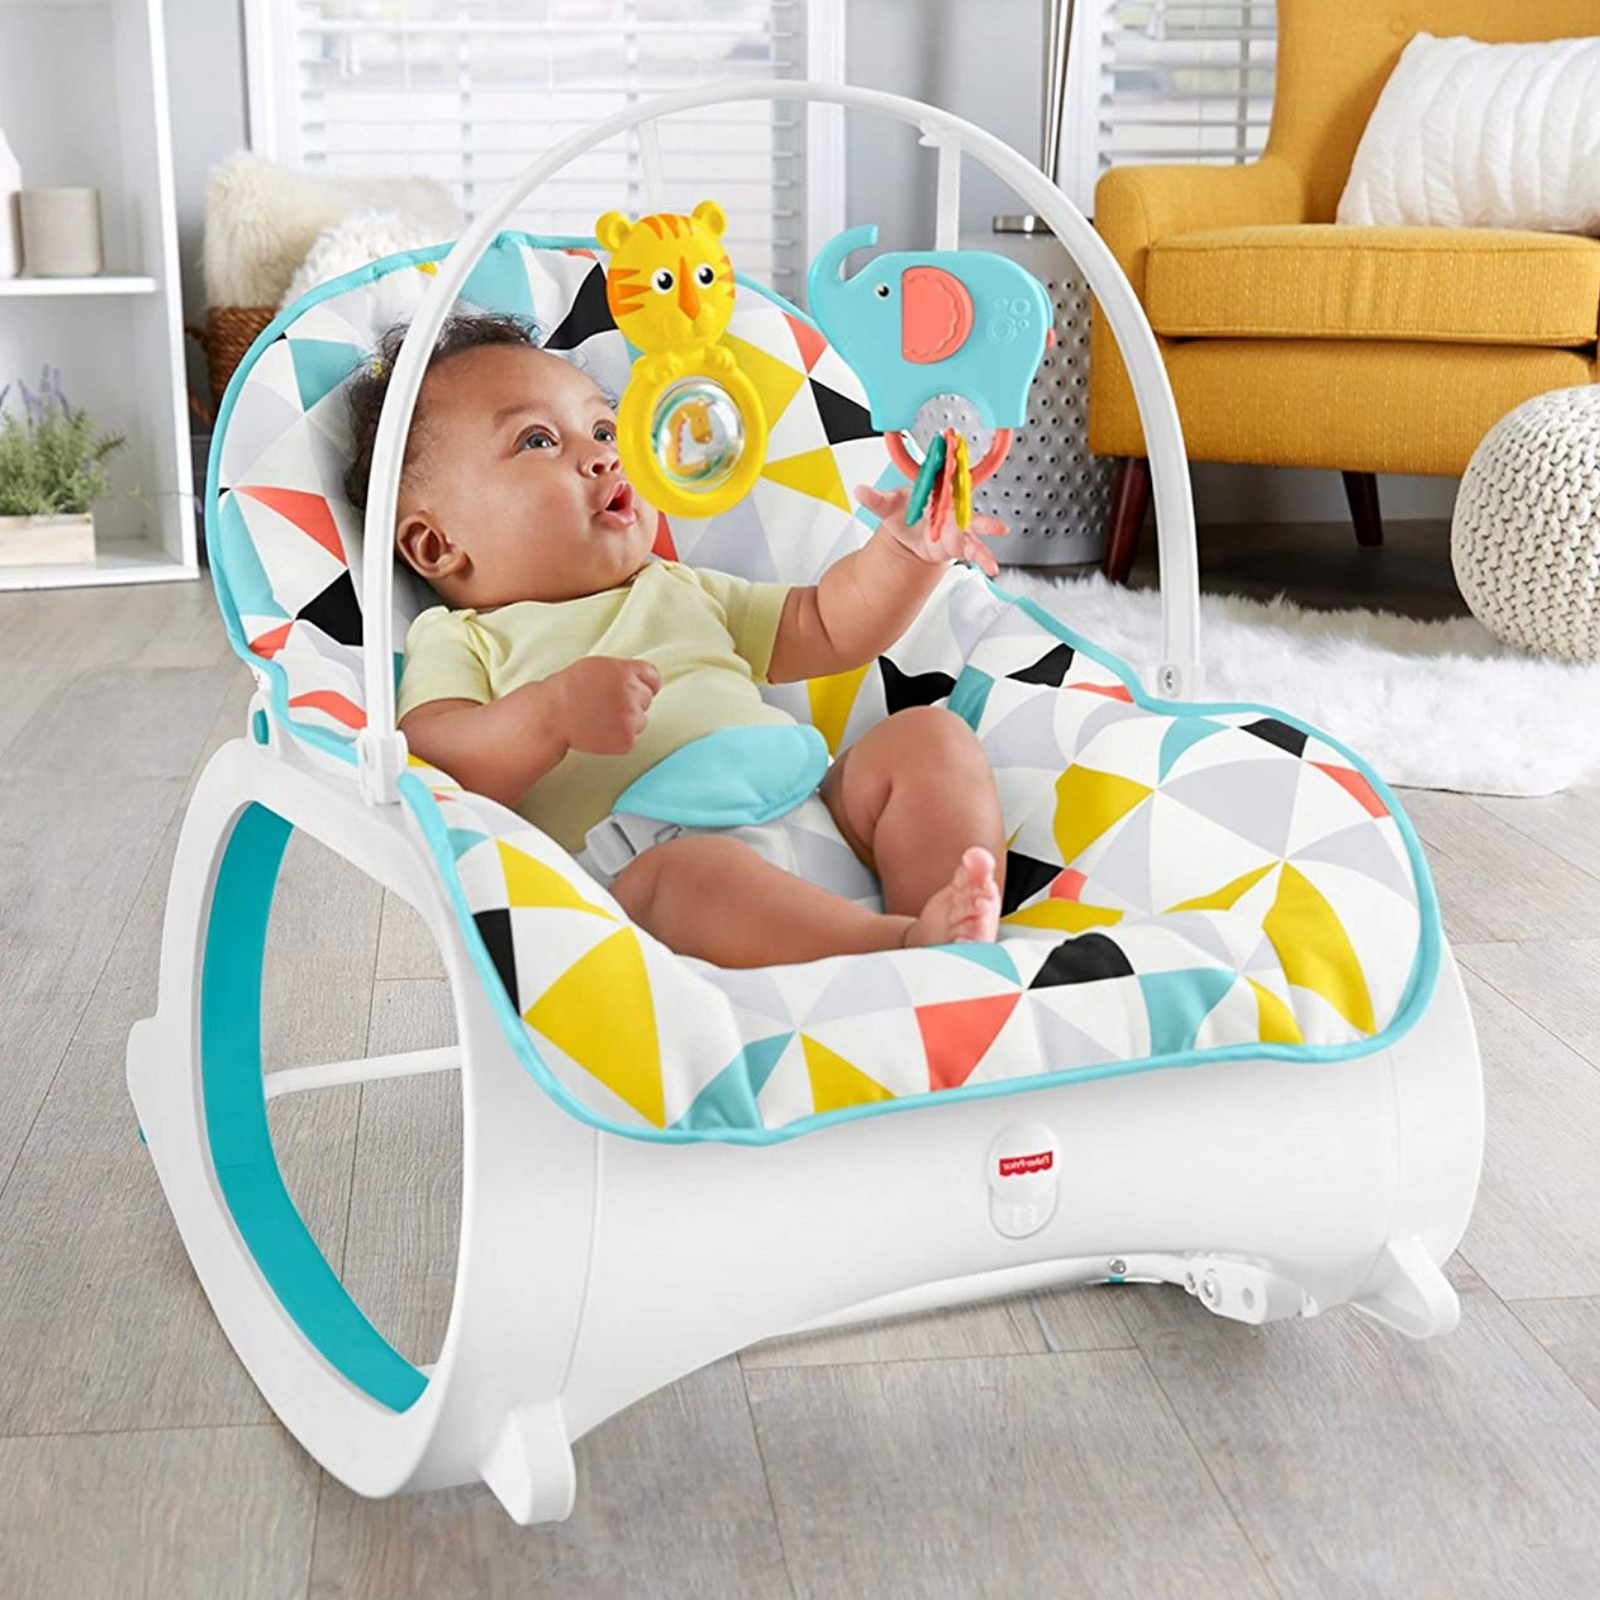 New Baby Bouncing Chair Newborn Infant Rocking Swing Seat Safety Bouncer